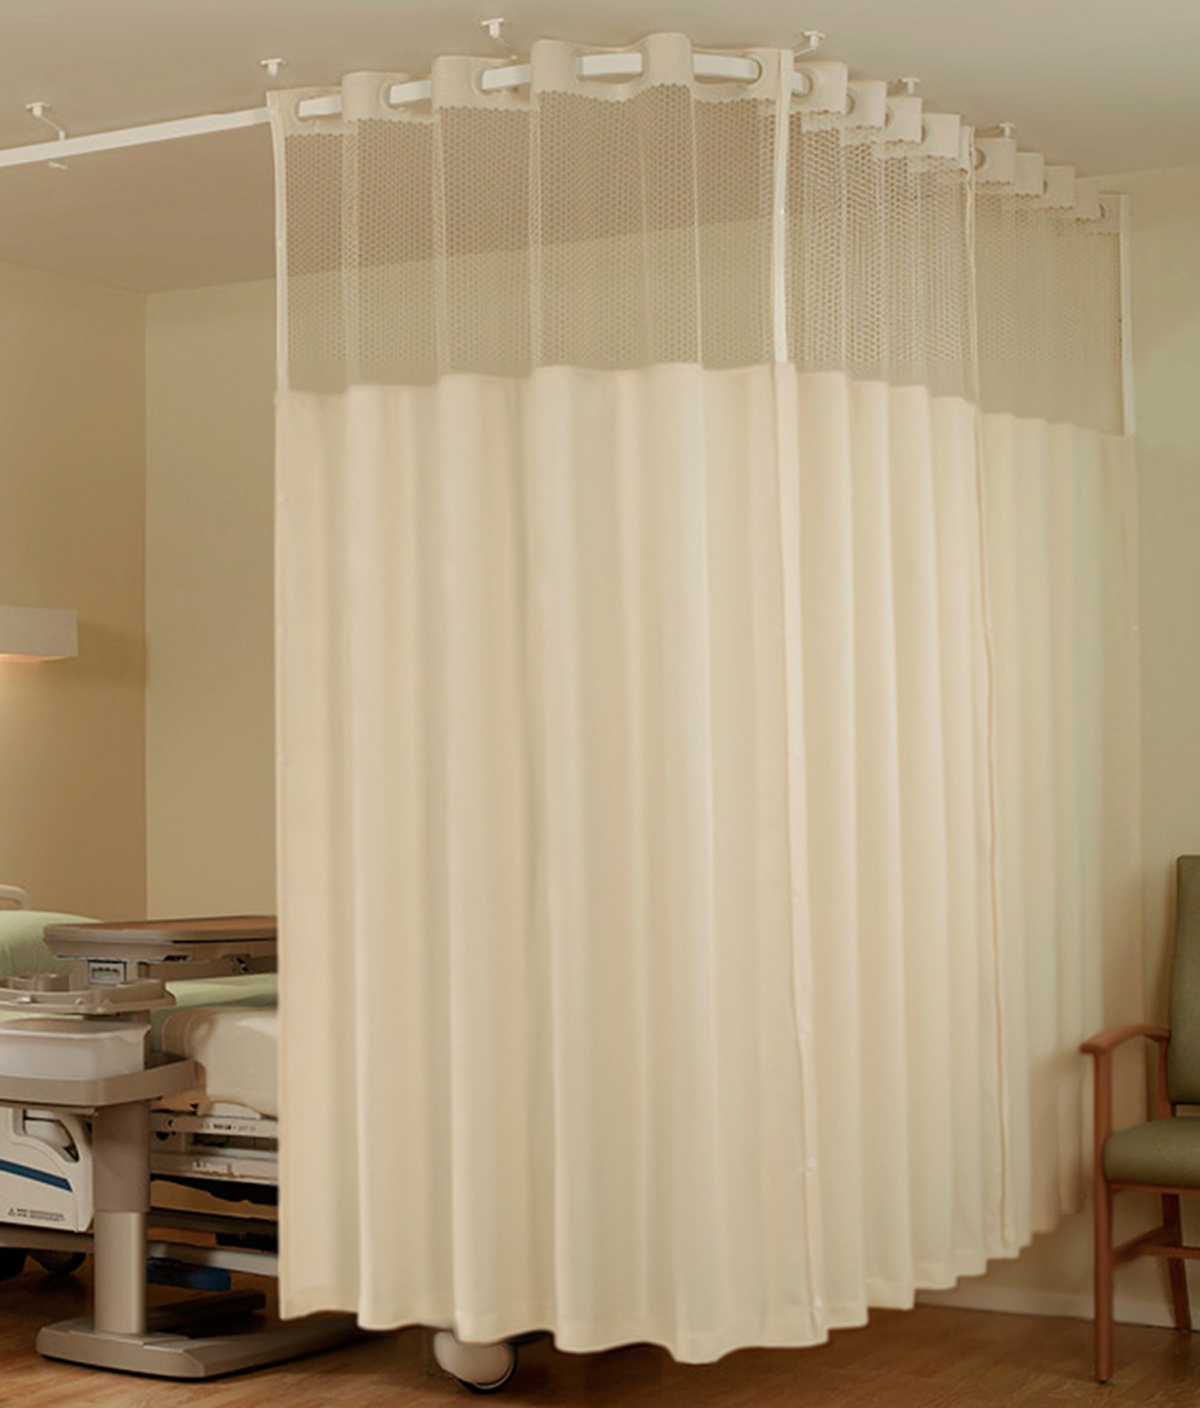 Lovely Eco Trax Cubicle Curtain System